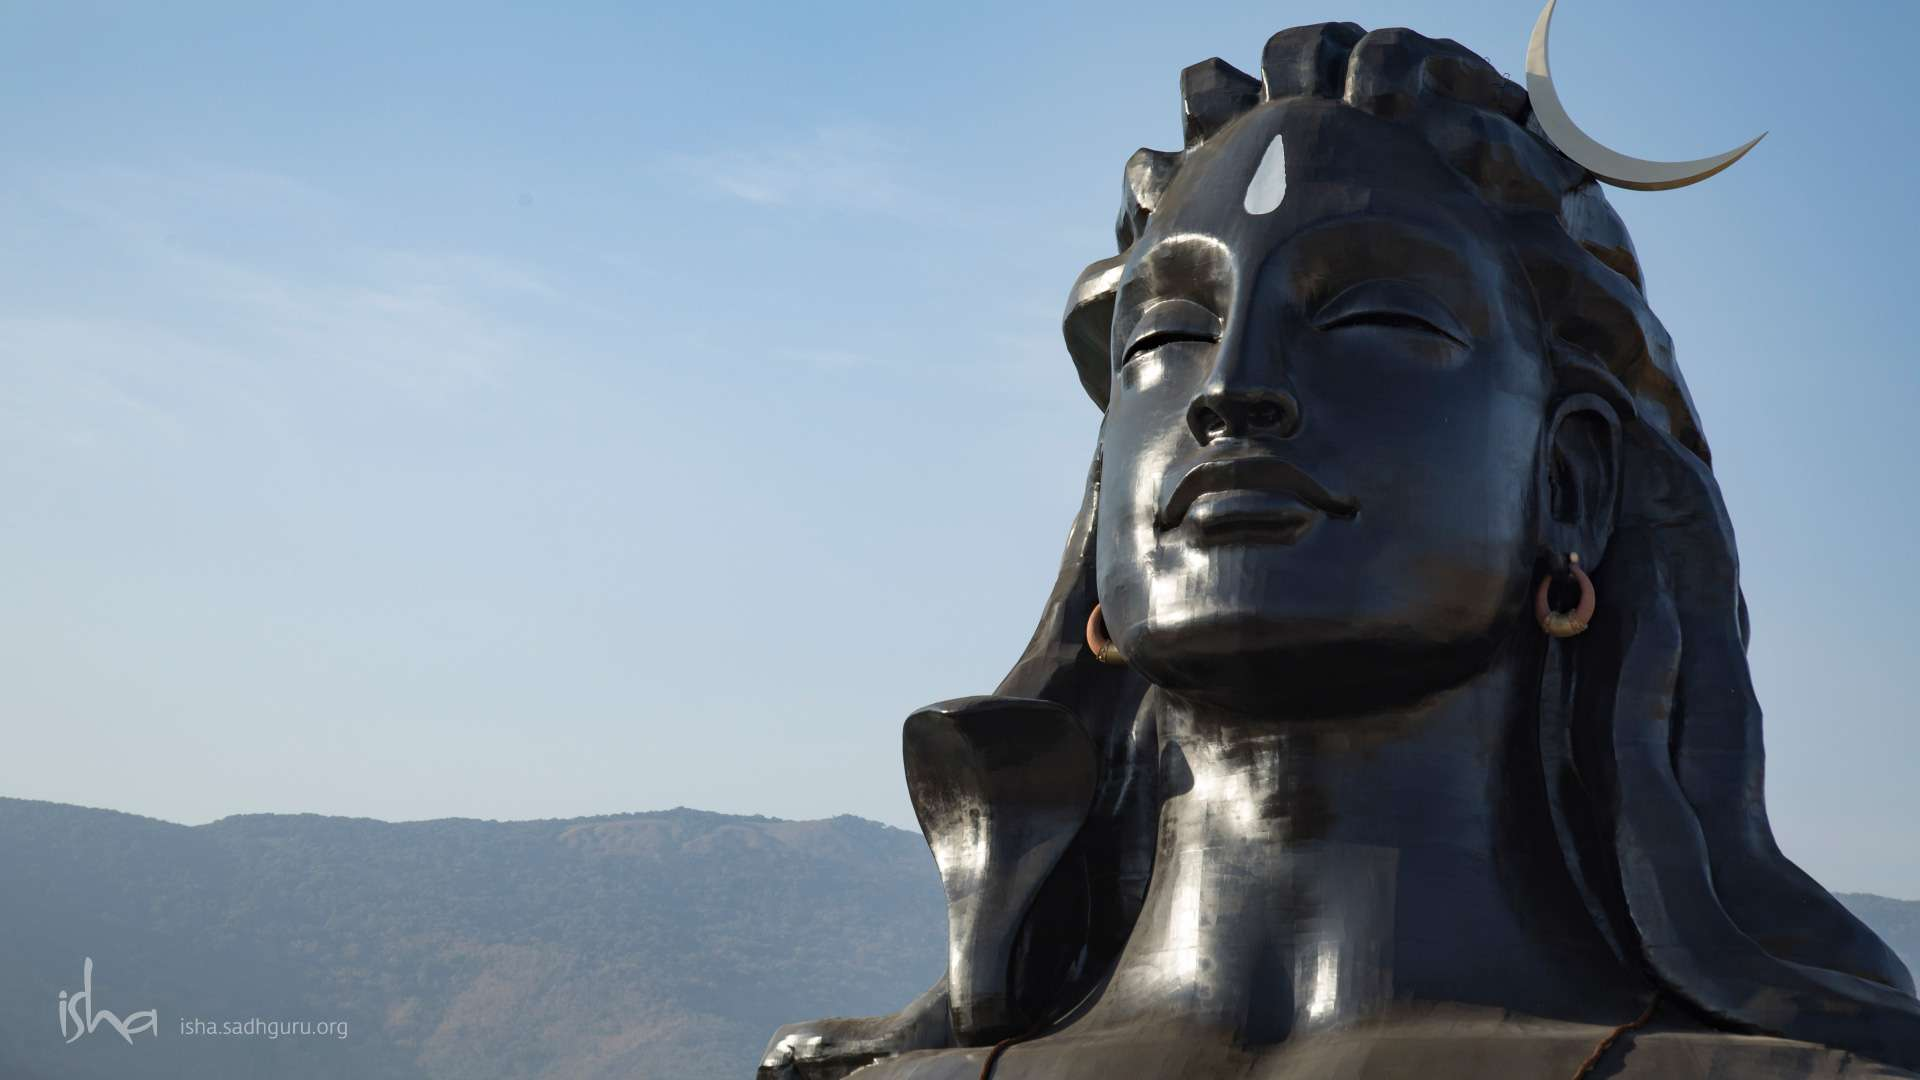 Mahashivratri Images - The Adiyogi with a clear sky HD